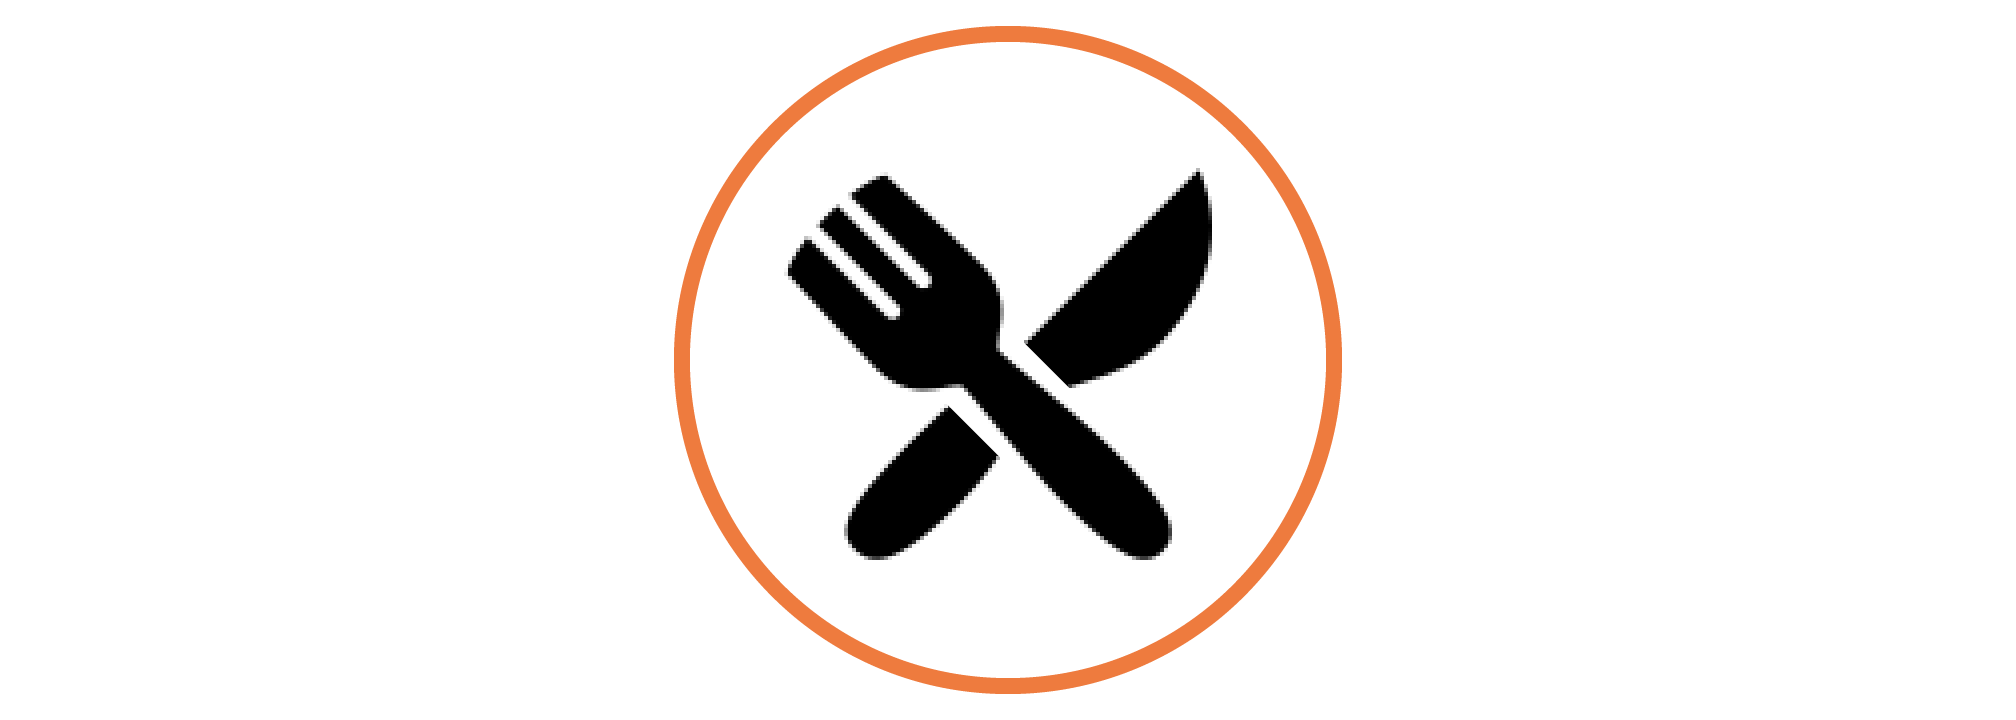 icon-fork_knife-ios-black-filled.png